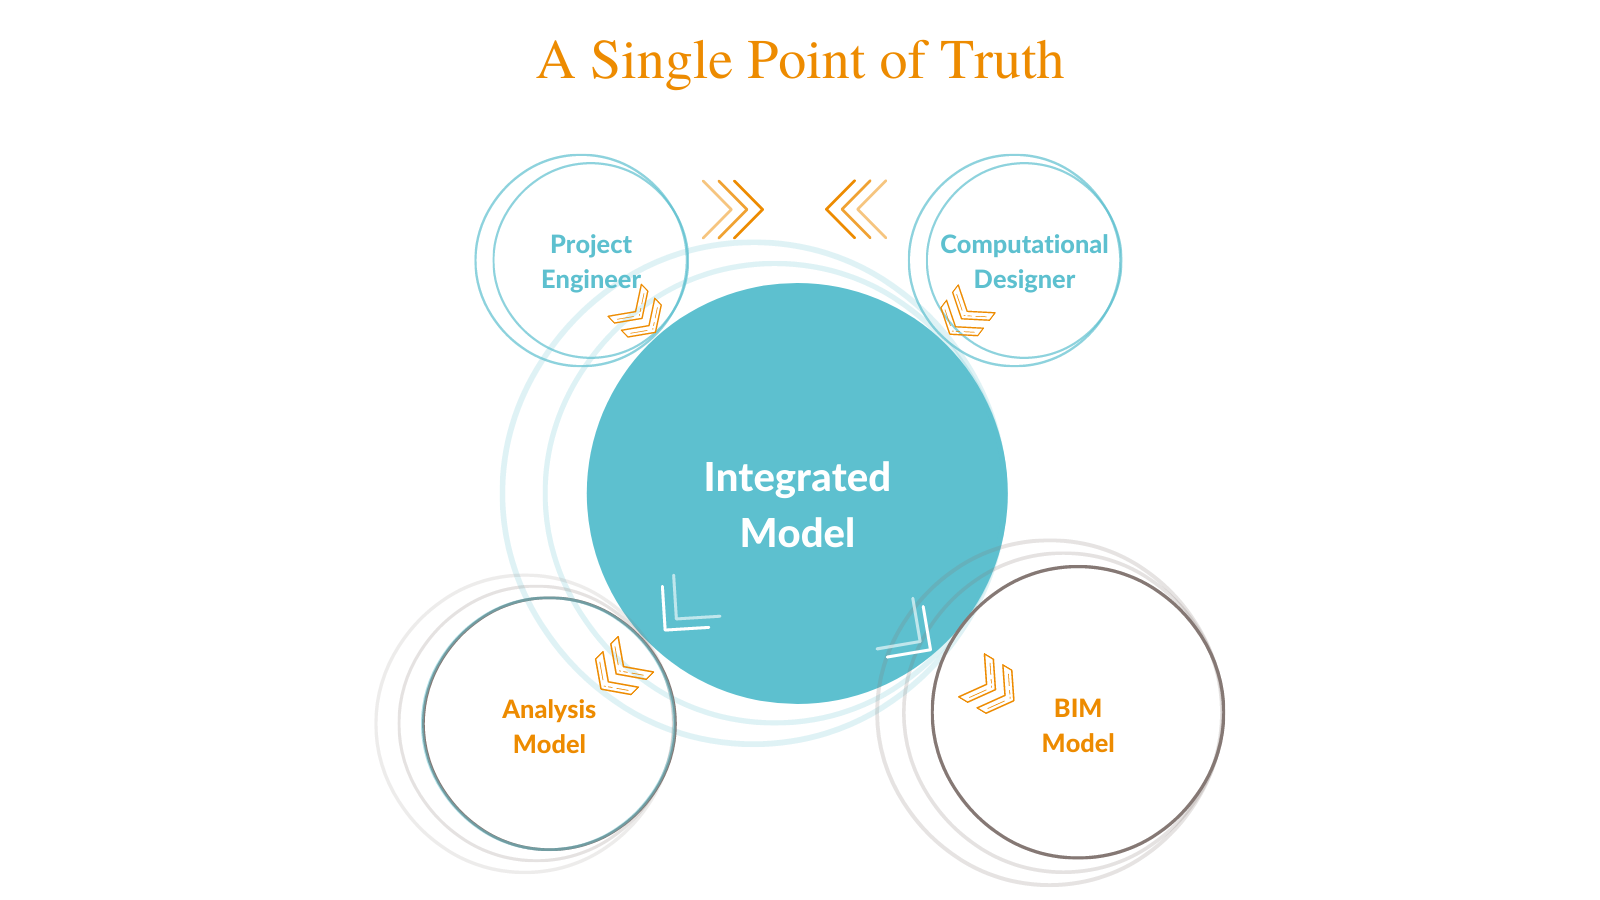 A Single Point of Truth: The Project Engineer and Computational Designer created an integrated model that automatically renders the analysis and BIM models.